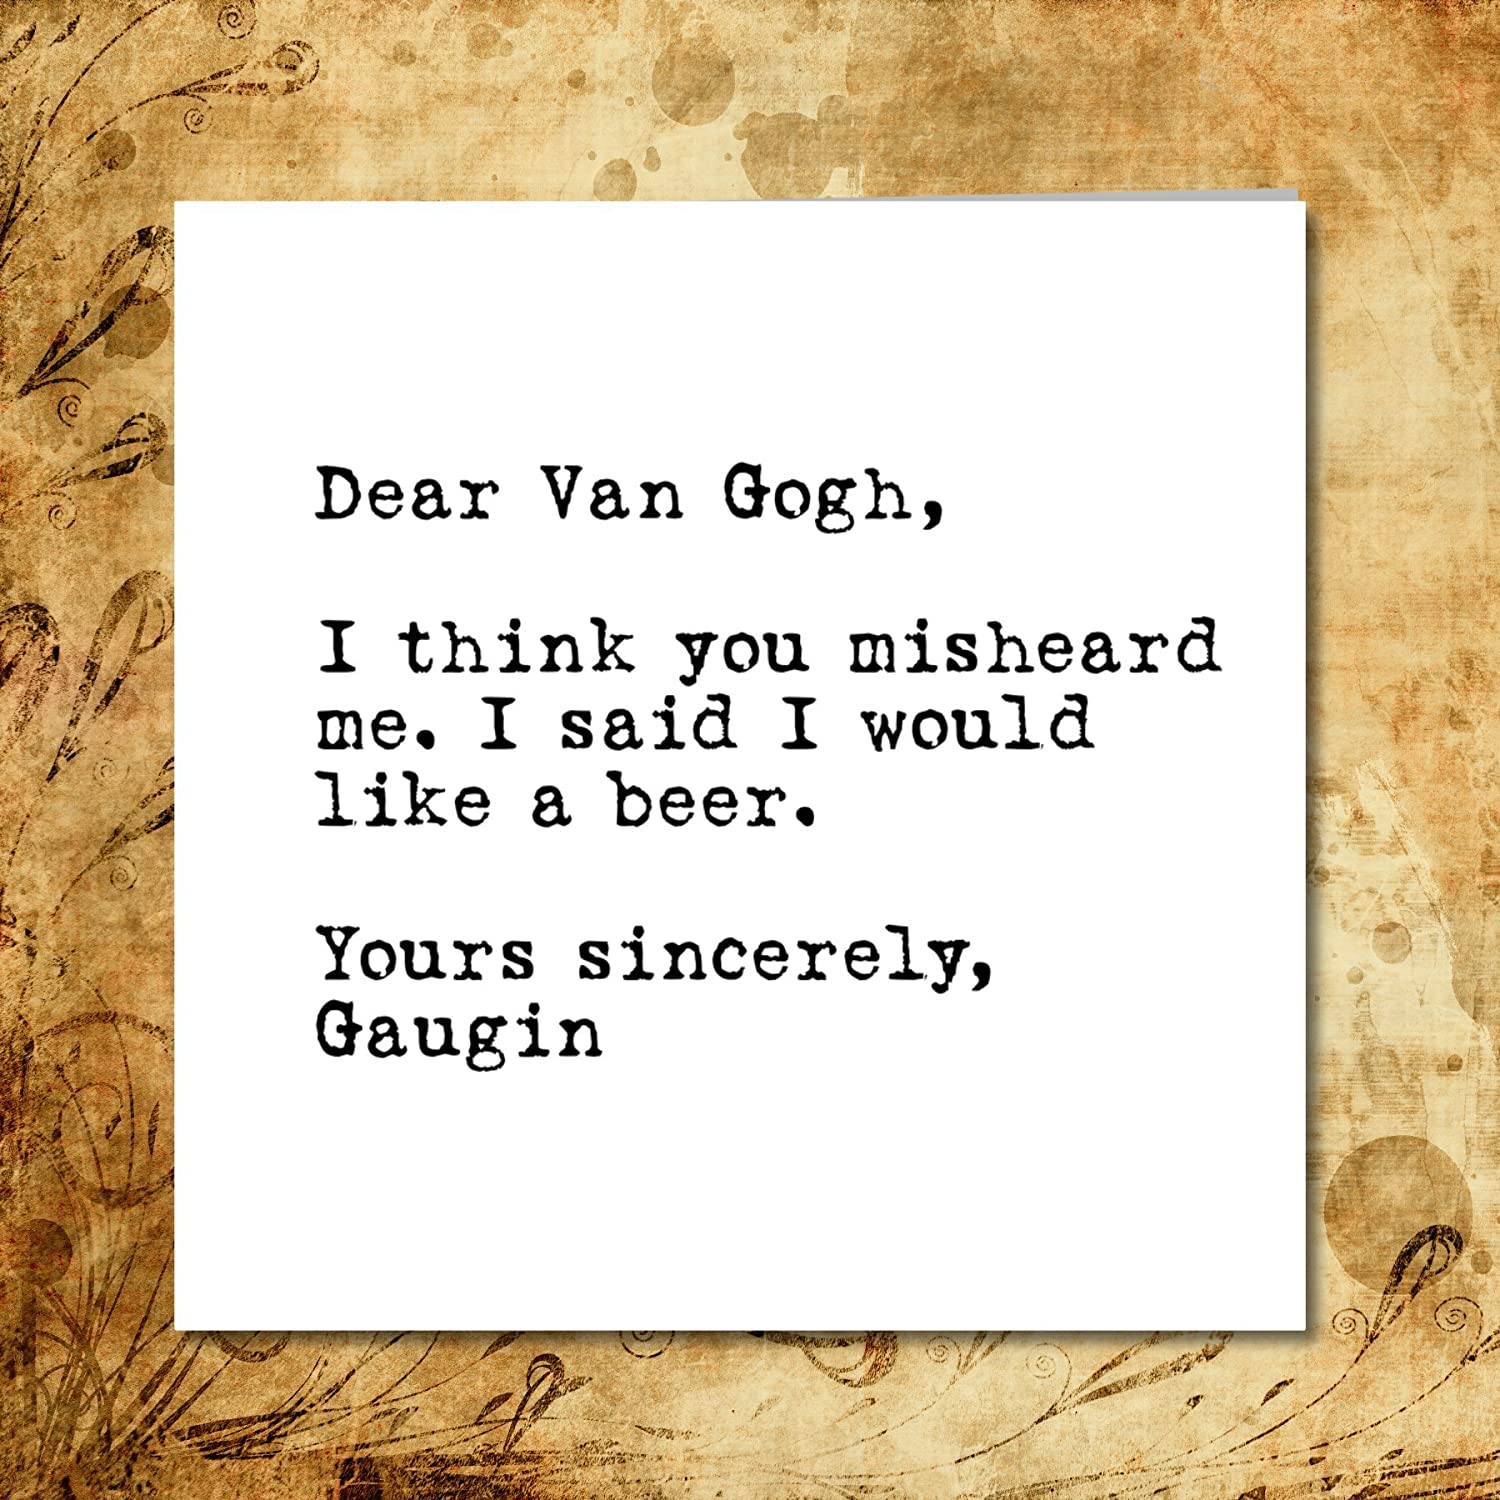 FUNNY CARD Birthday Or Any Occasion Card For Family Friend Van Gogh Gaugin Ear Art Artist Quote Pun Proverb Amazoncouk Handmade